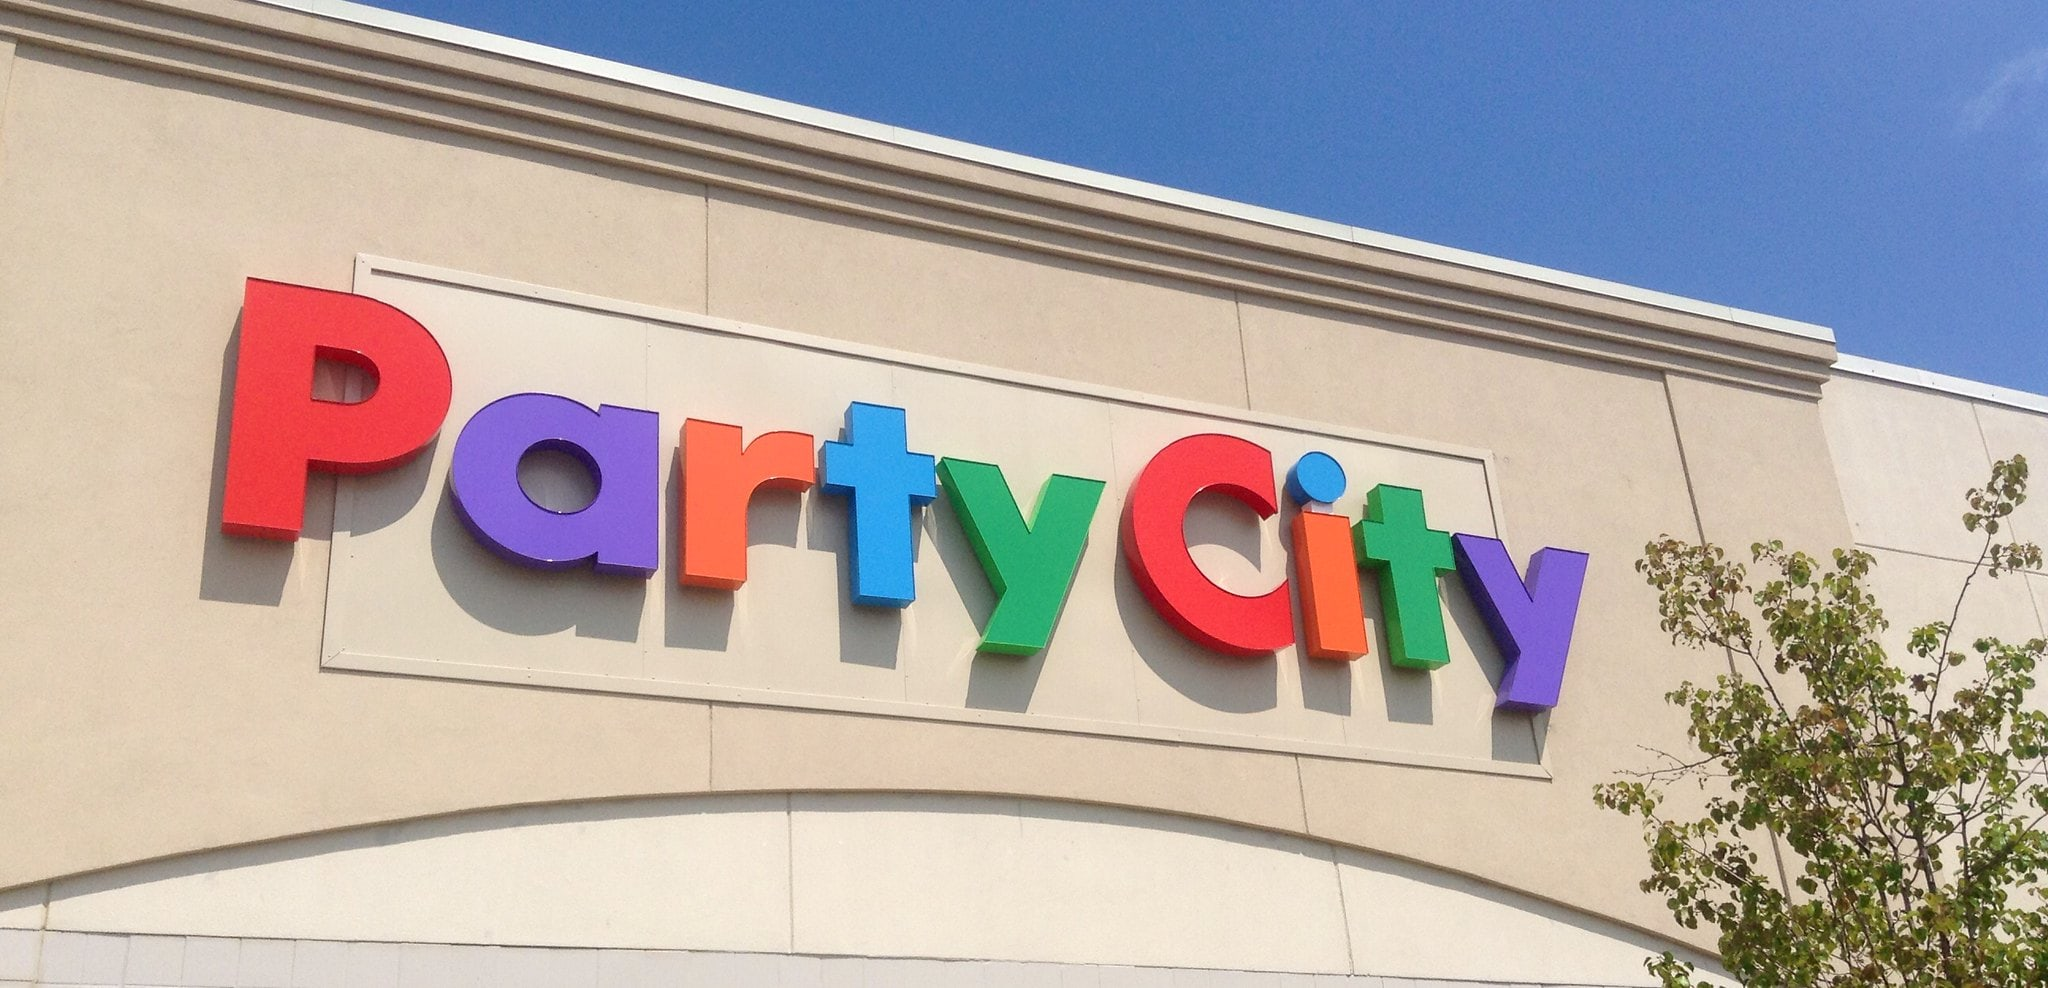 flickr - CC BY 2.0 - Mike Mozart - Party City